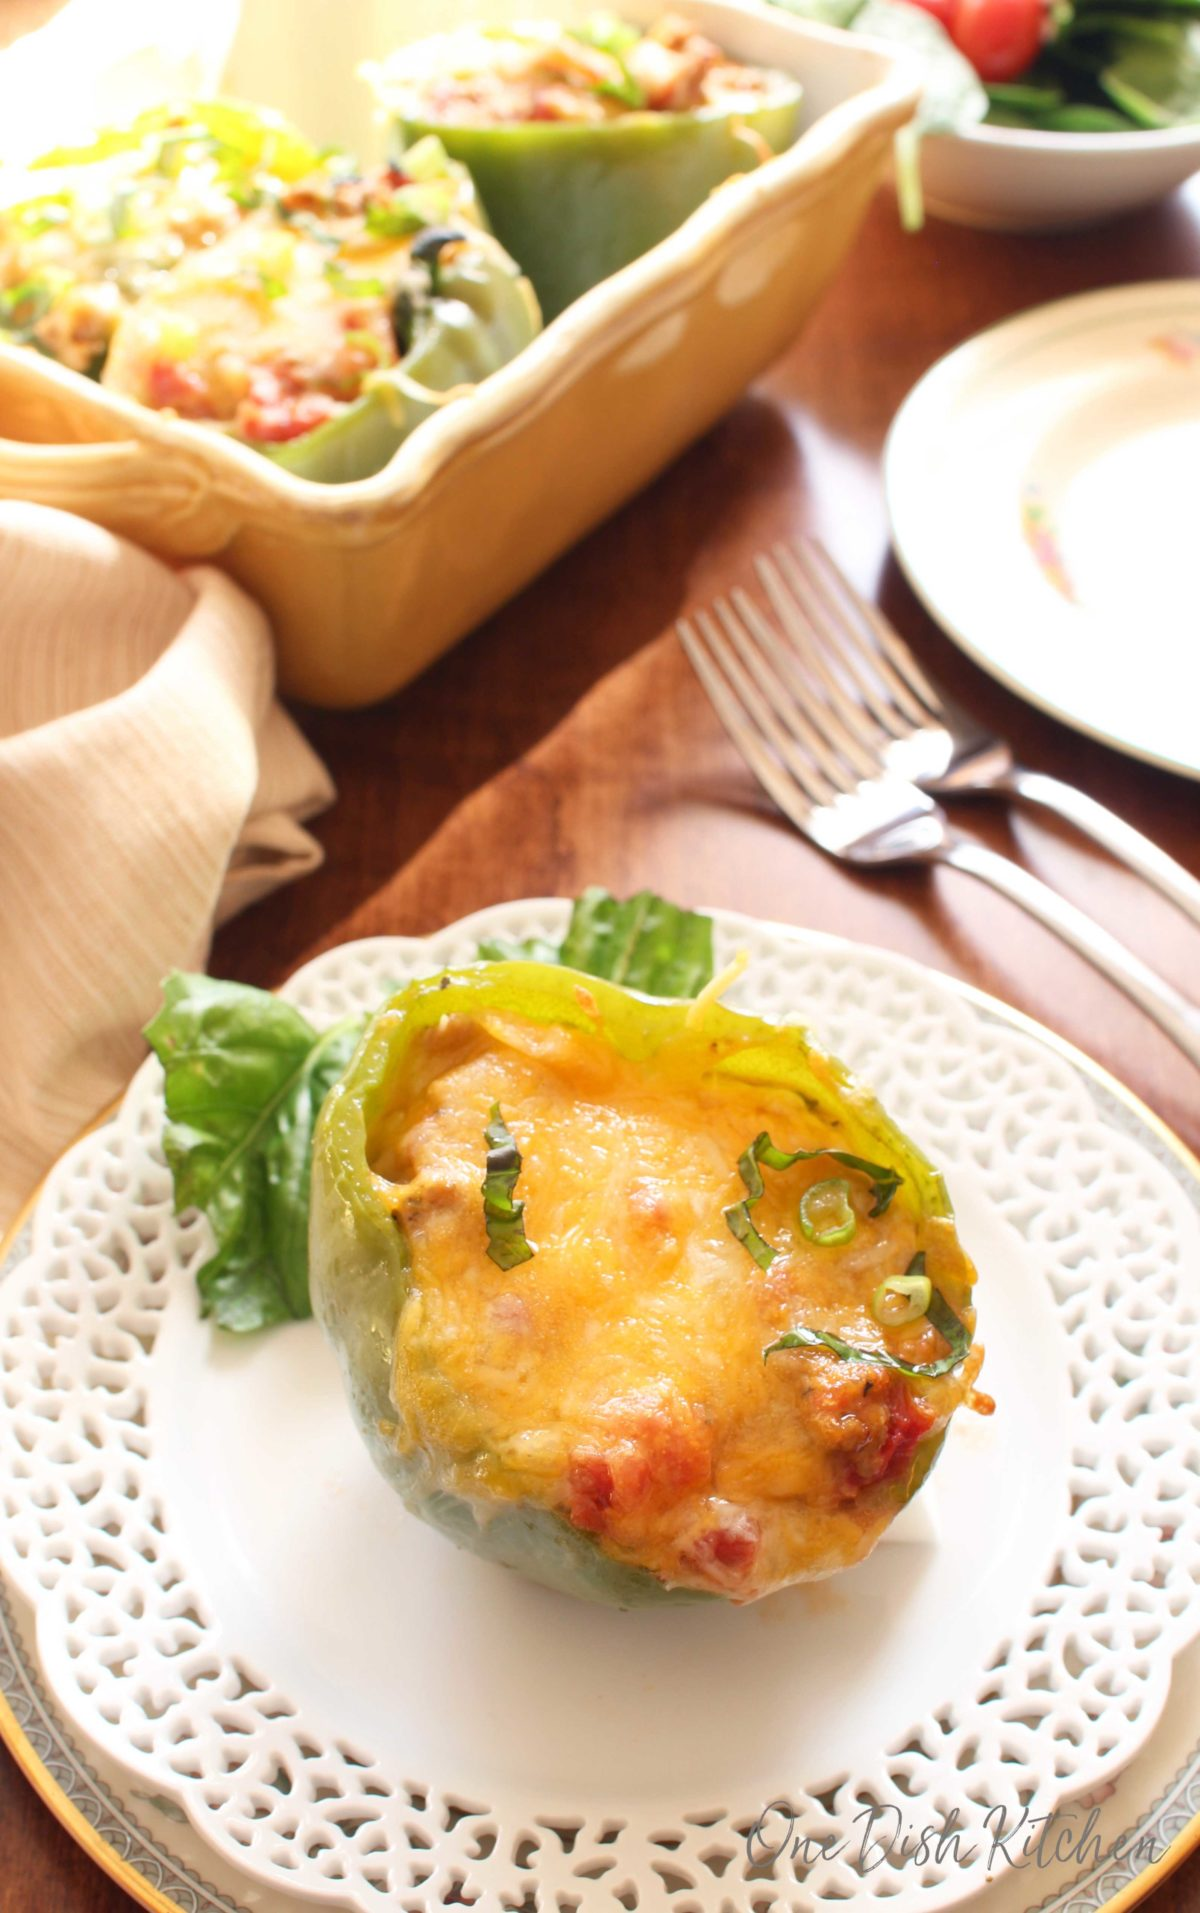 One stuffed bell pepper on a white plate with a yellow dish holding 3 additional stuffed peppers in the background.